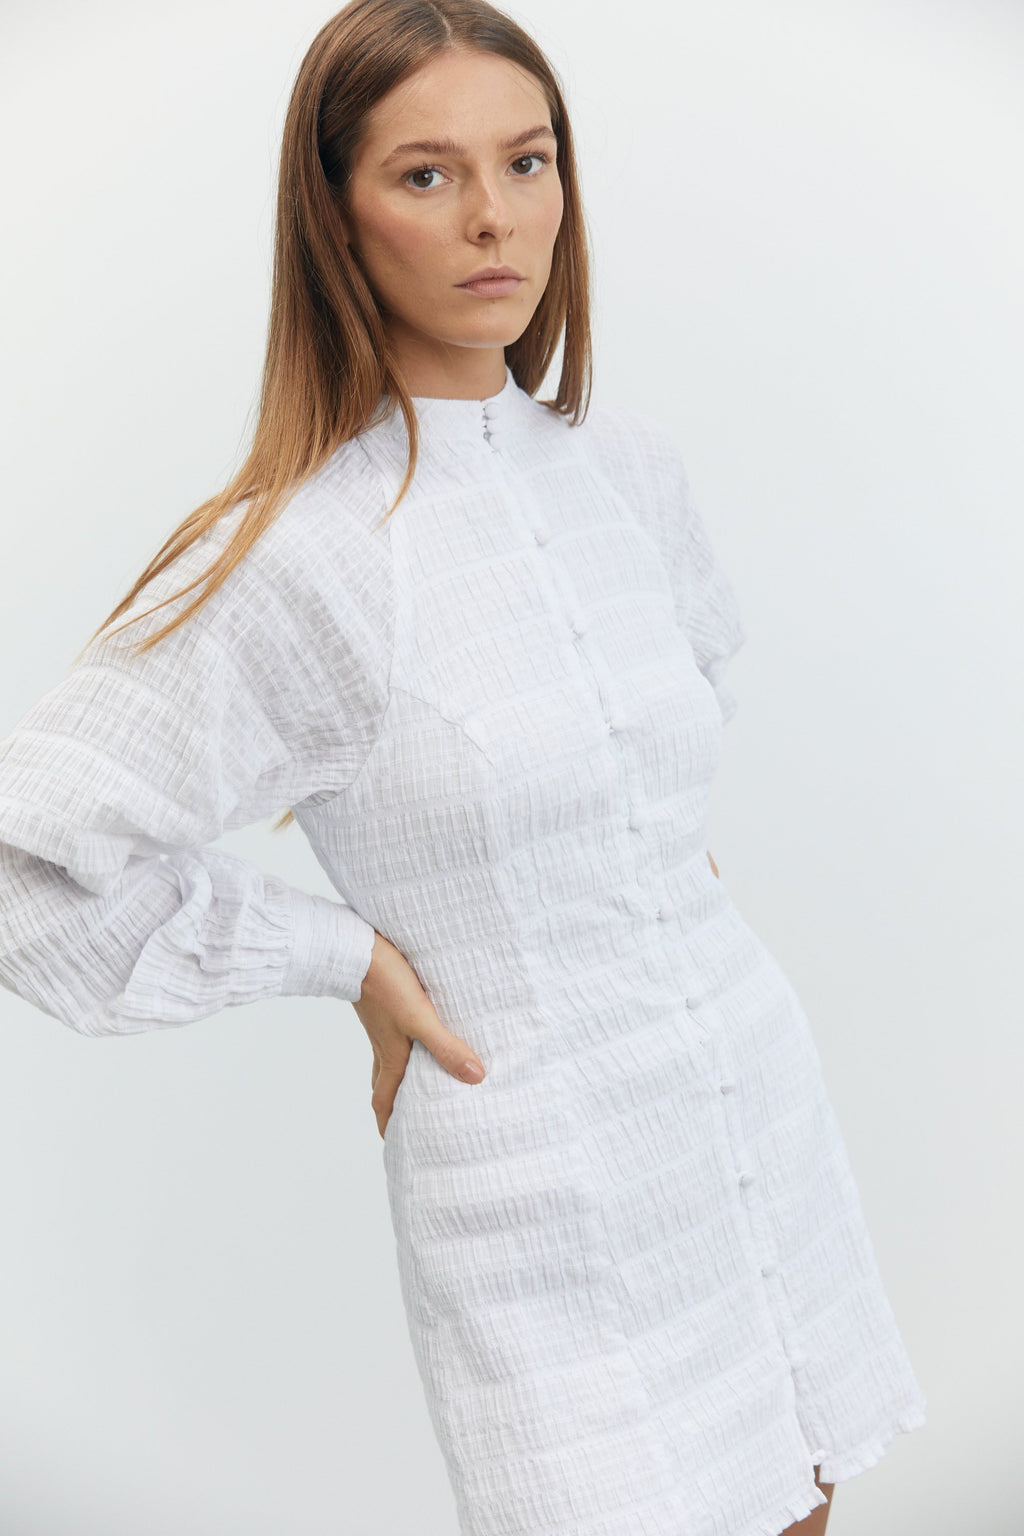 Third Form Whitewash Button Up Dress - White